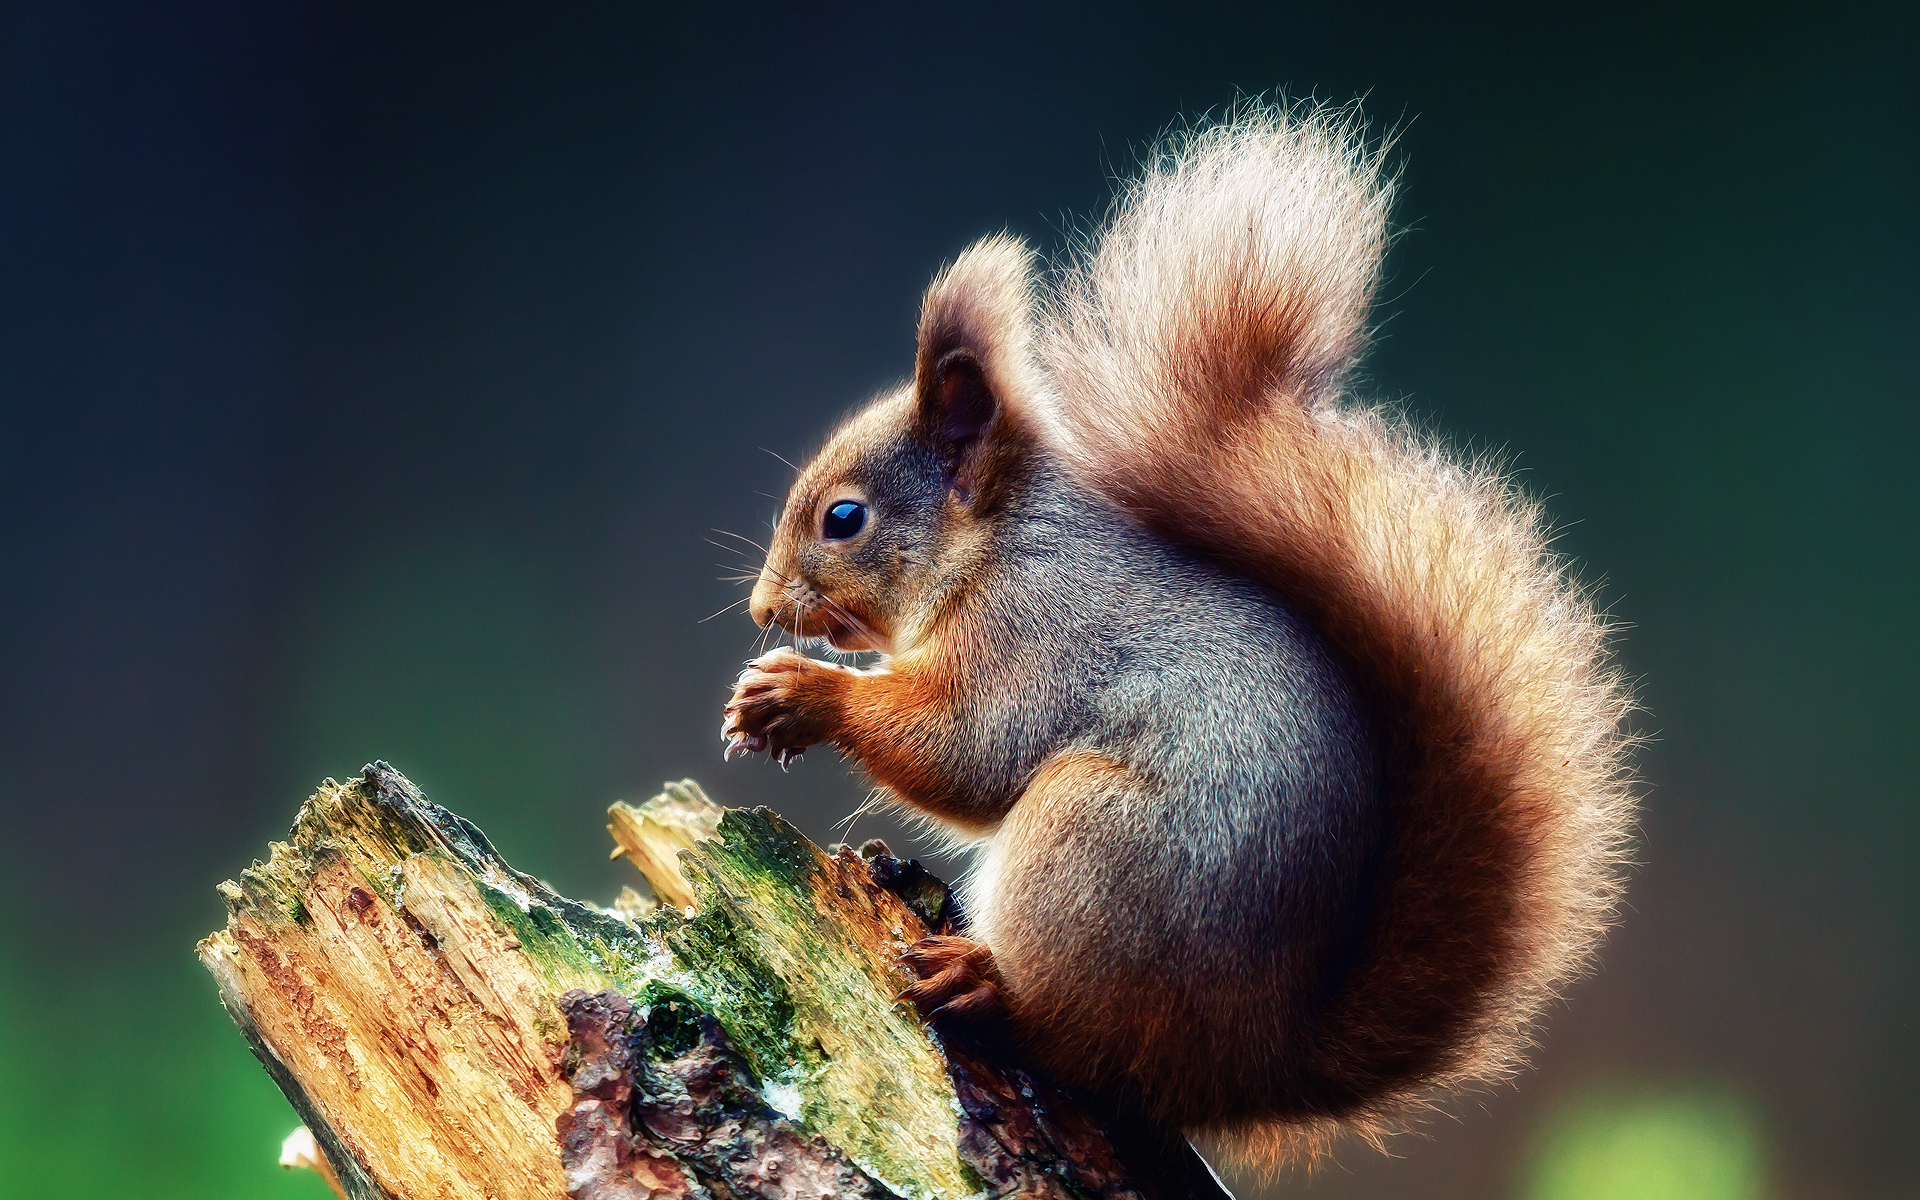 41230 download wallpaper Animals, Squirrel screensavers and pictures for free